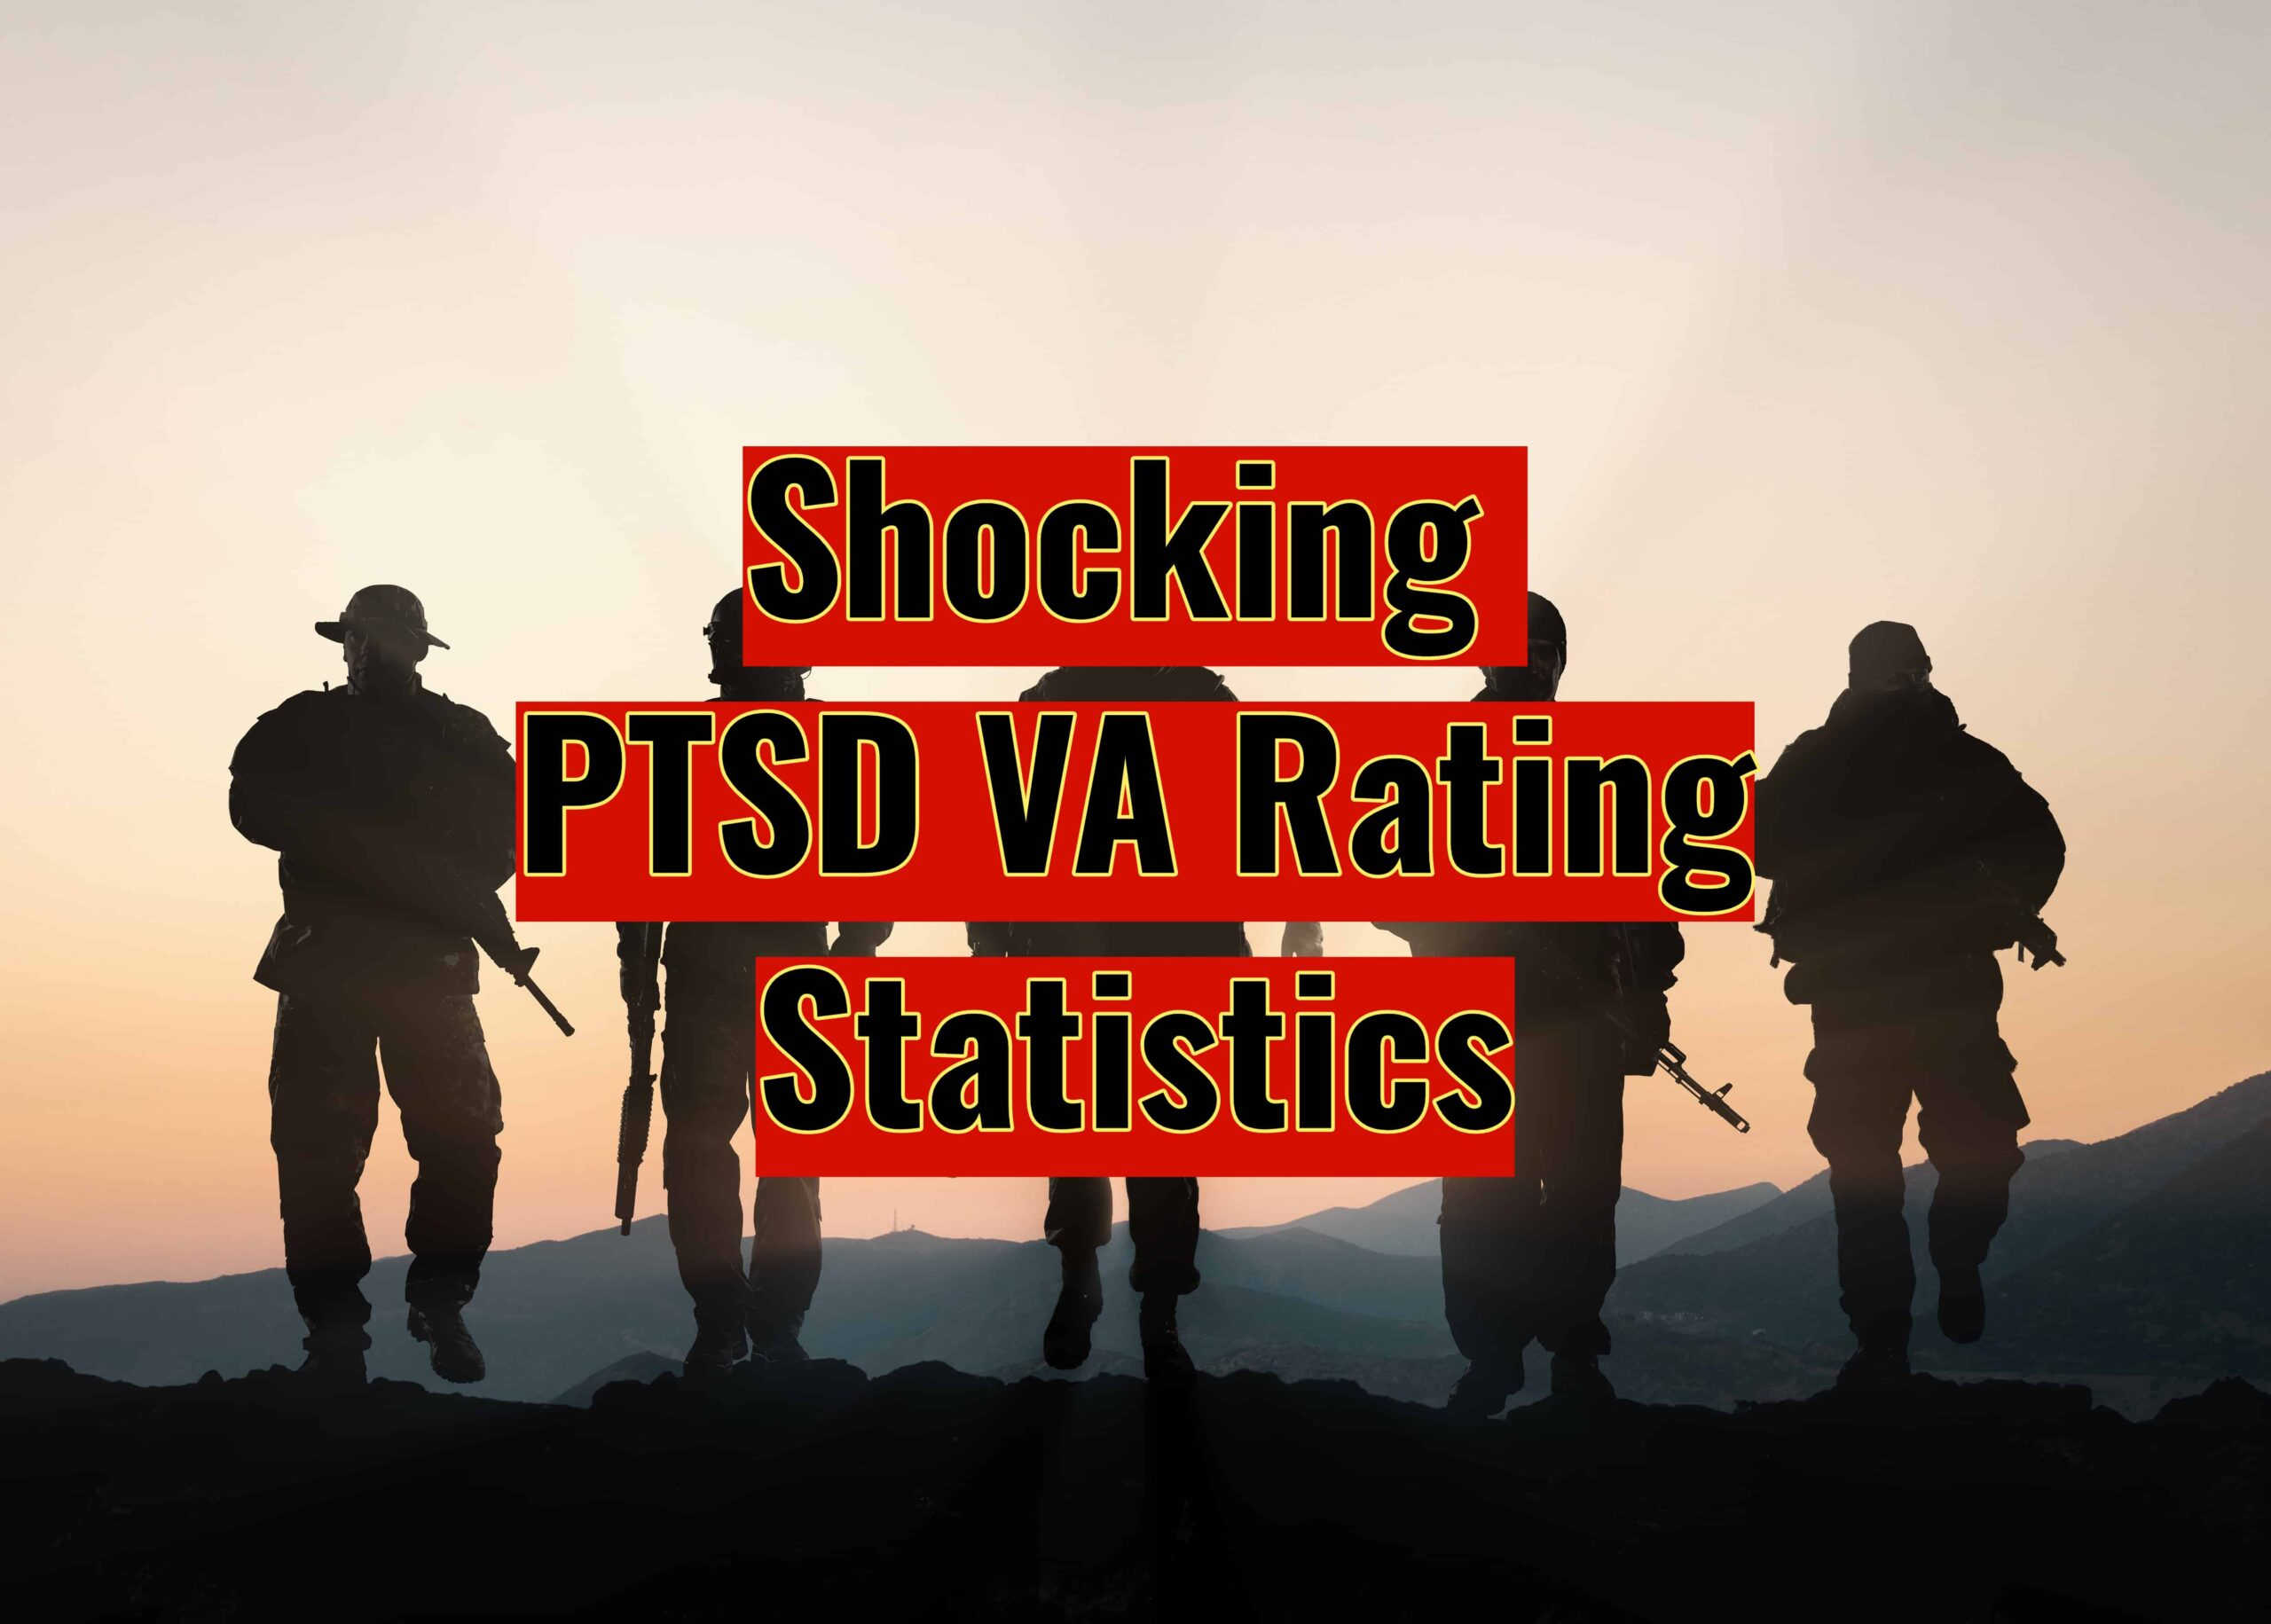 PTSD VA Rating Statistics